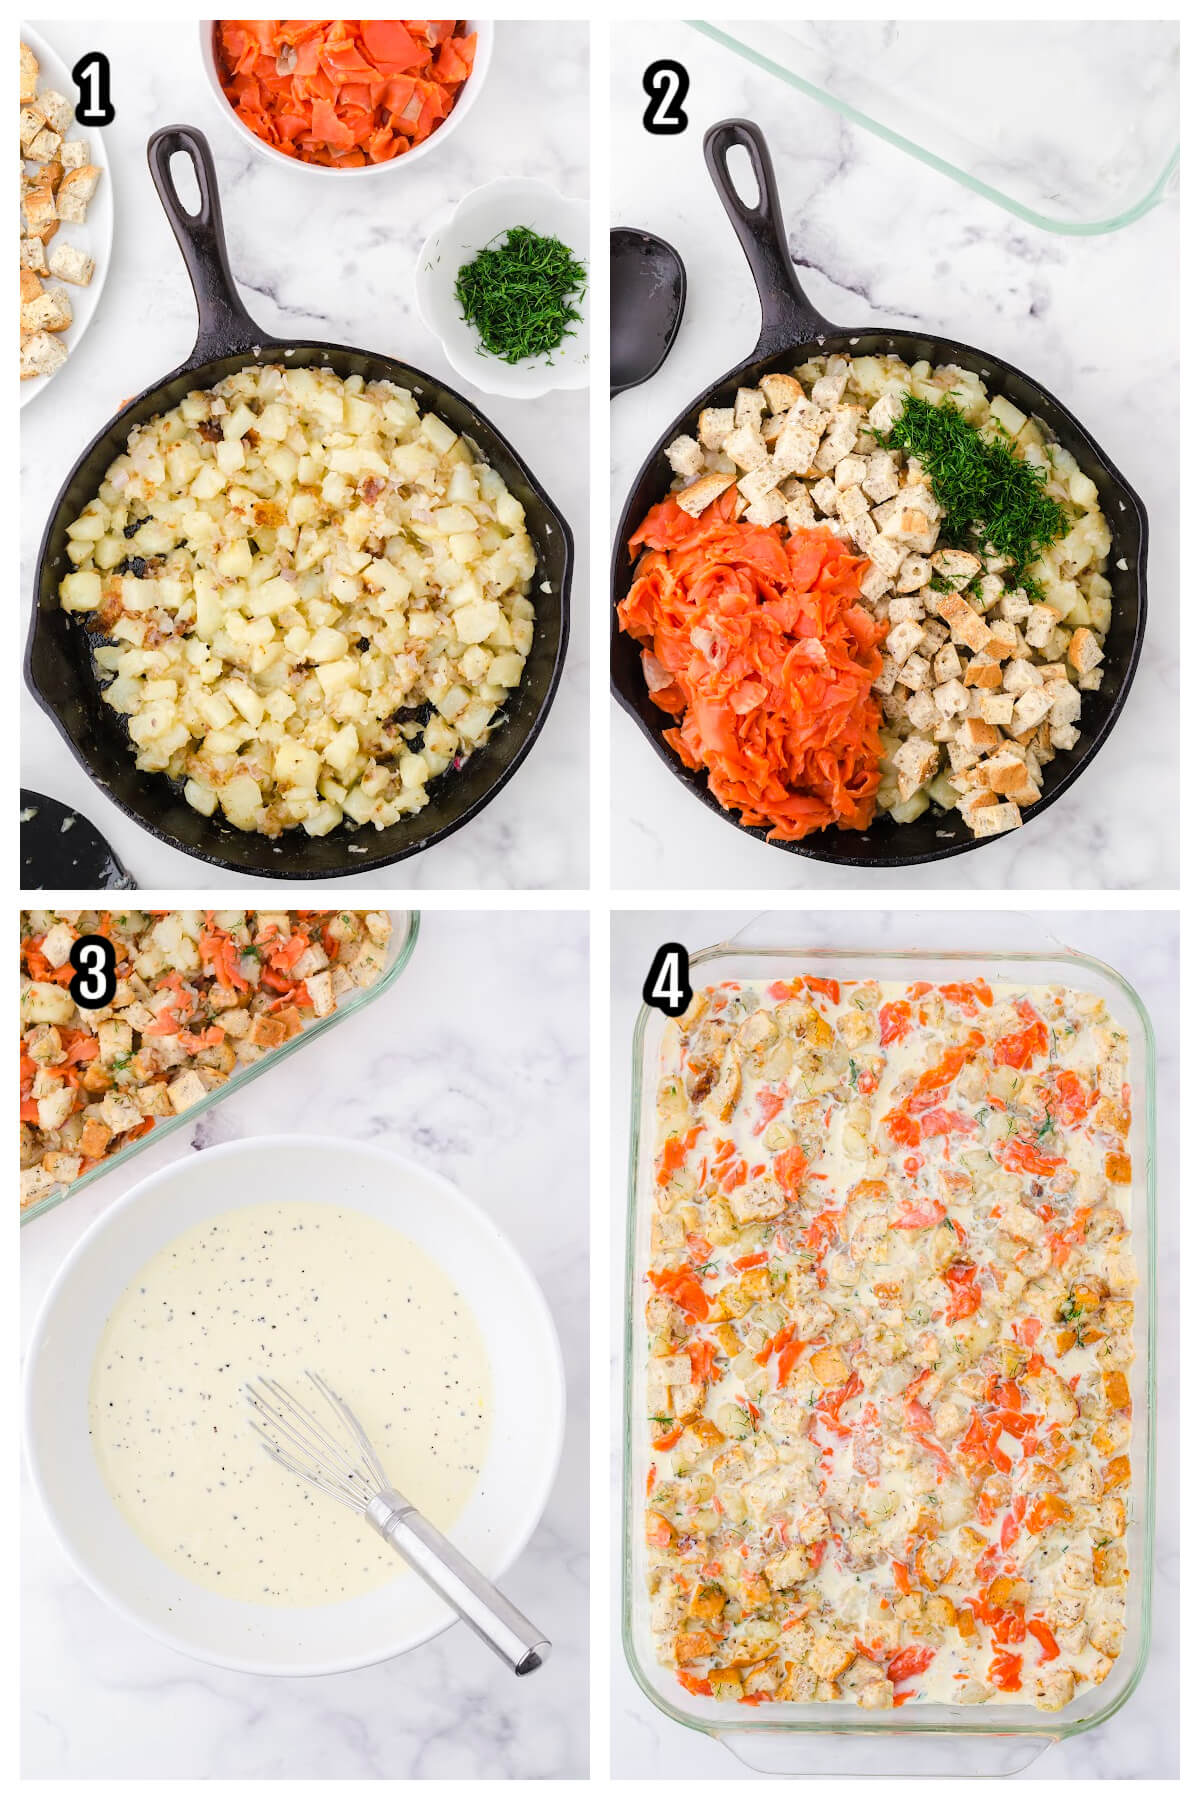 Steps to putting together the Smoked salmon casserole